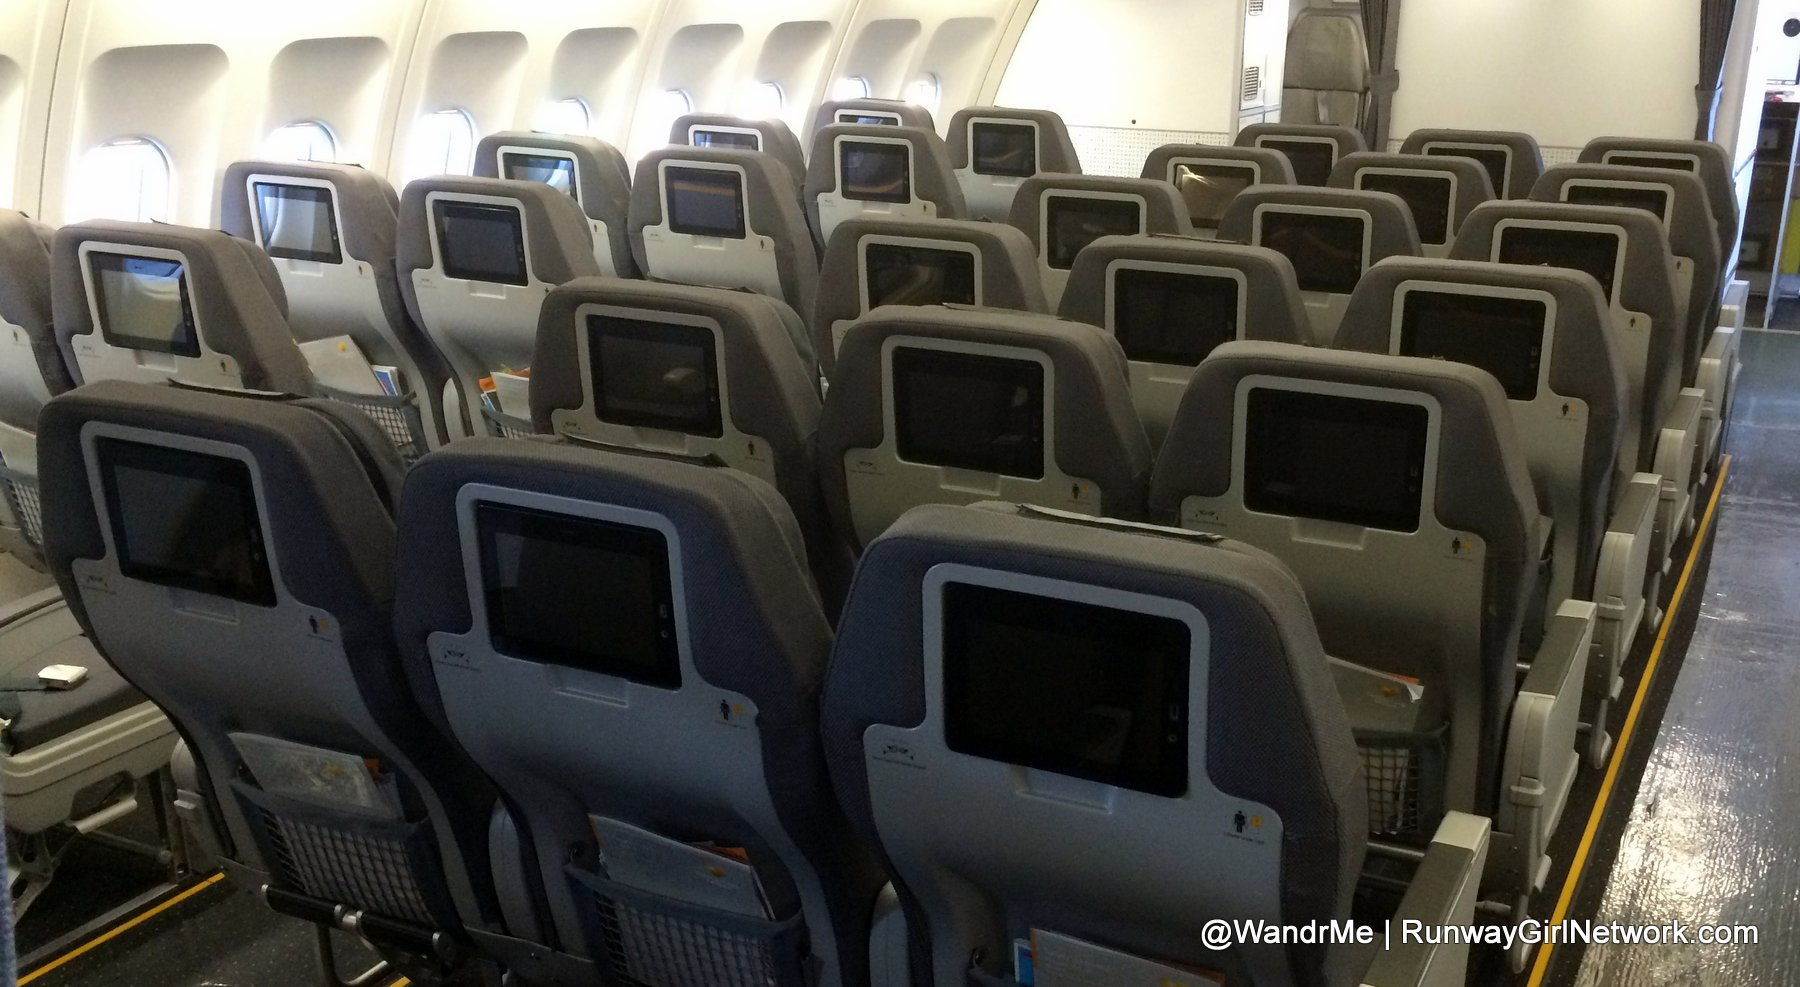 Premium Economy sells well for the Thomas Cook Group as a reasonable product at a reasonable price.